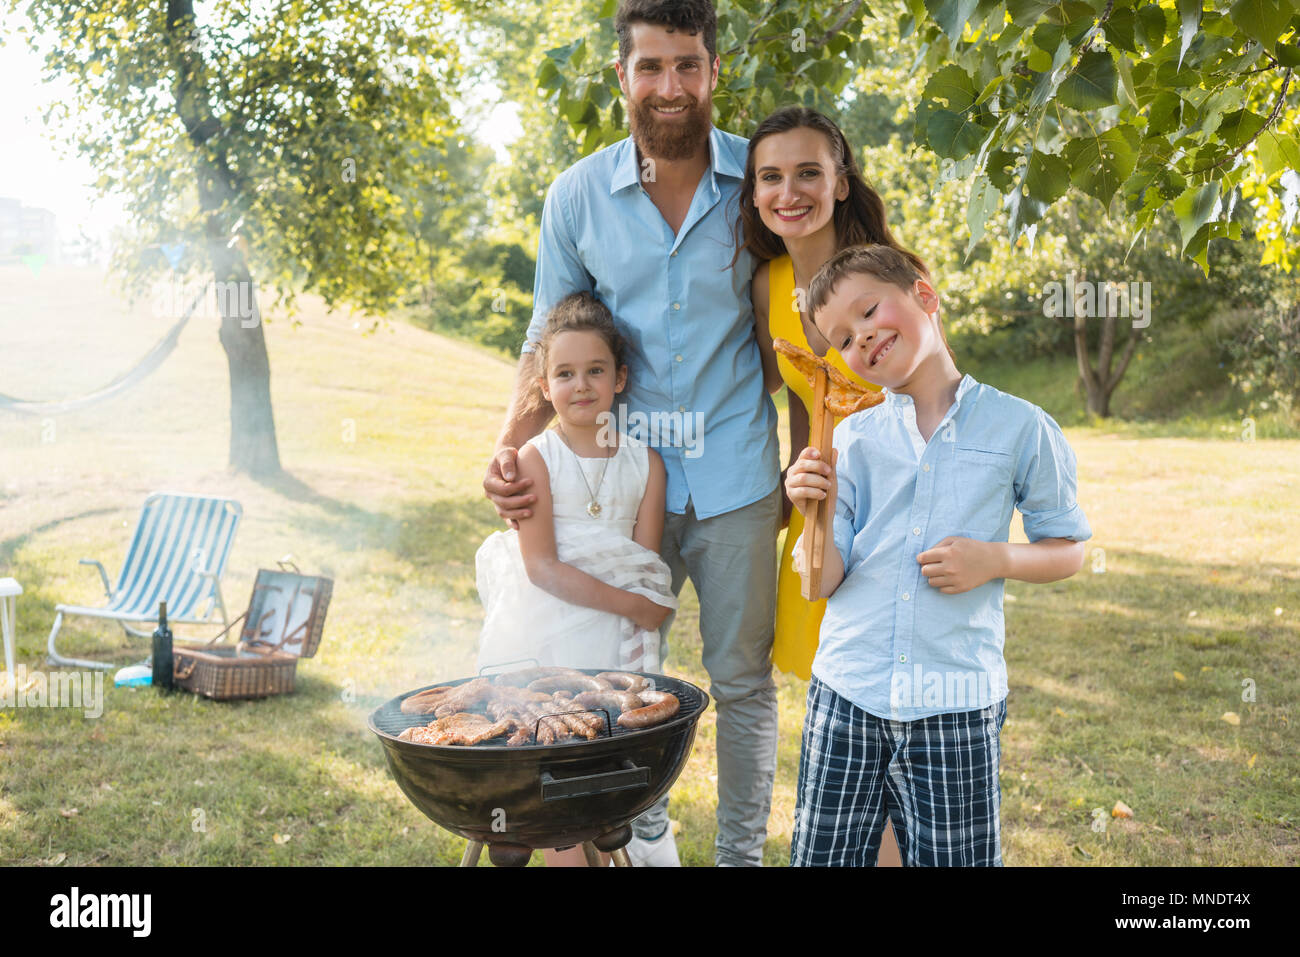 Portrait of happy family with two children standing outdoors near a barbecue - Stock Image